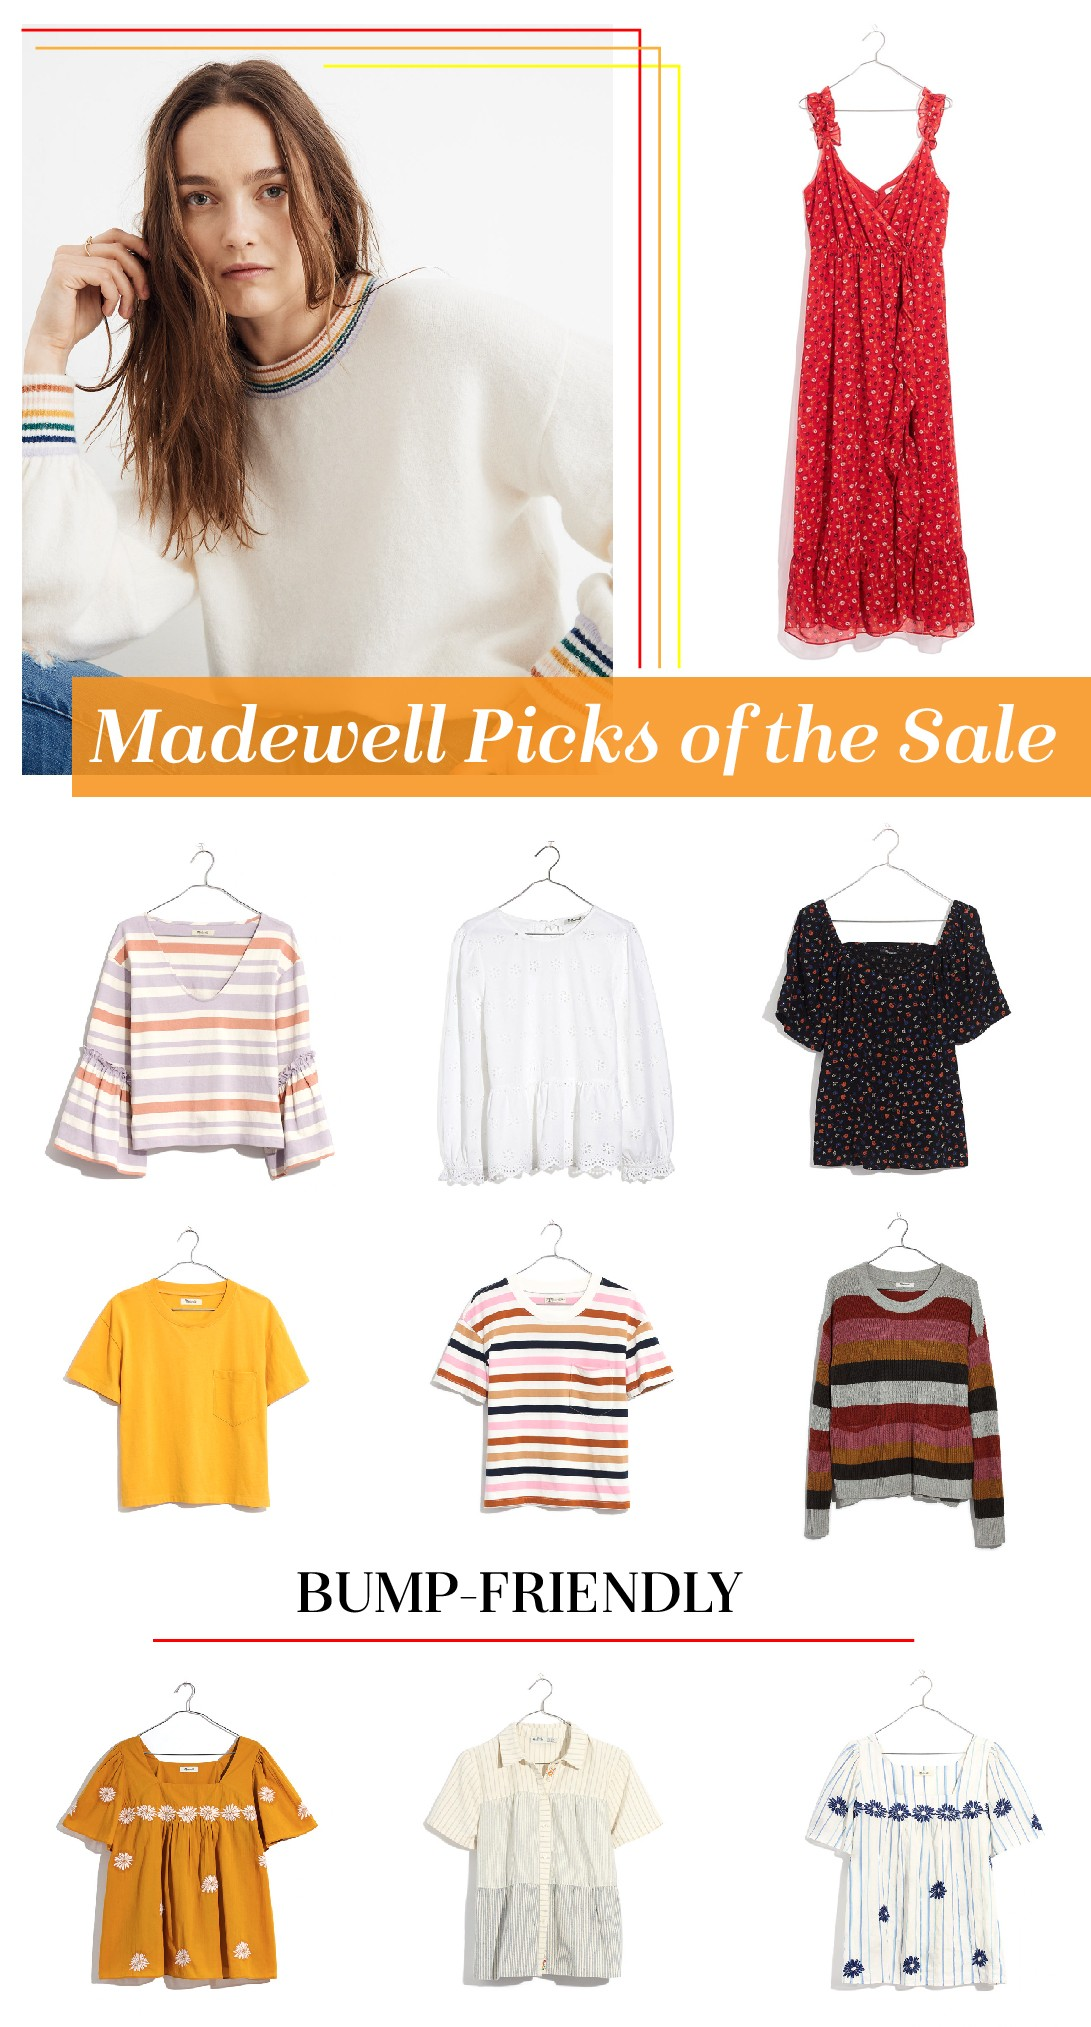 0cbd9271c02a1 ... last week and Madewell is chock full of amazing pieces that are on sale  right now! After searching through over 500 items I've gathered up my  favourites ...